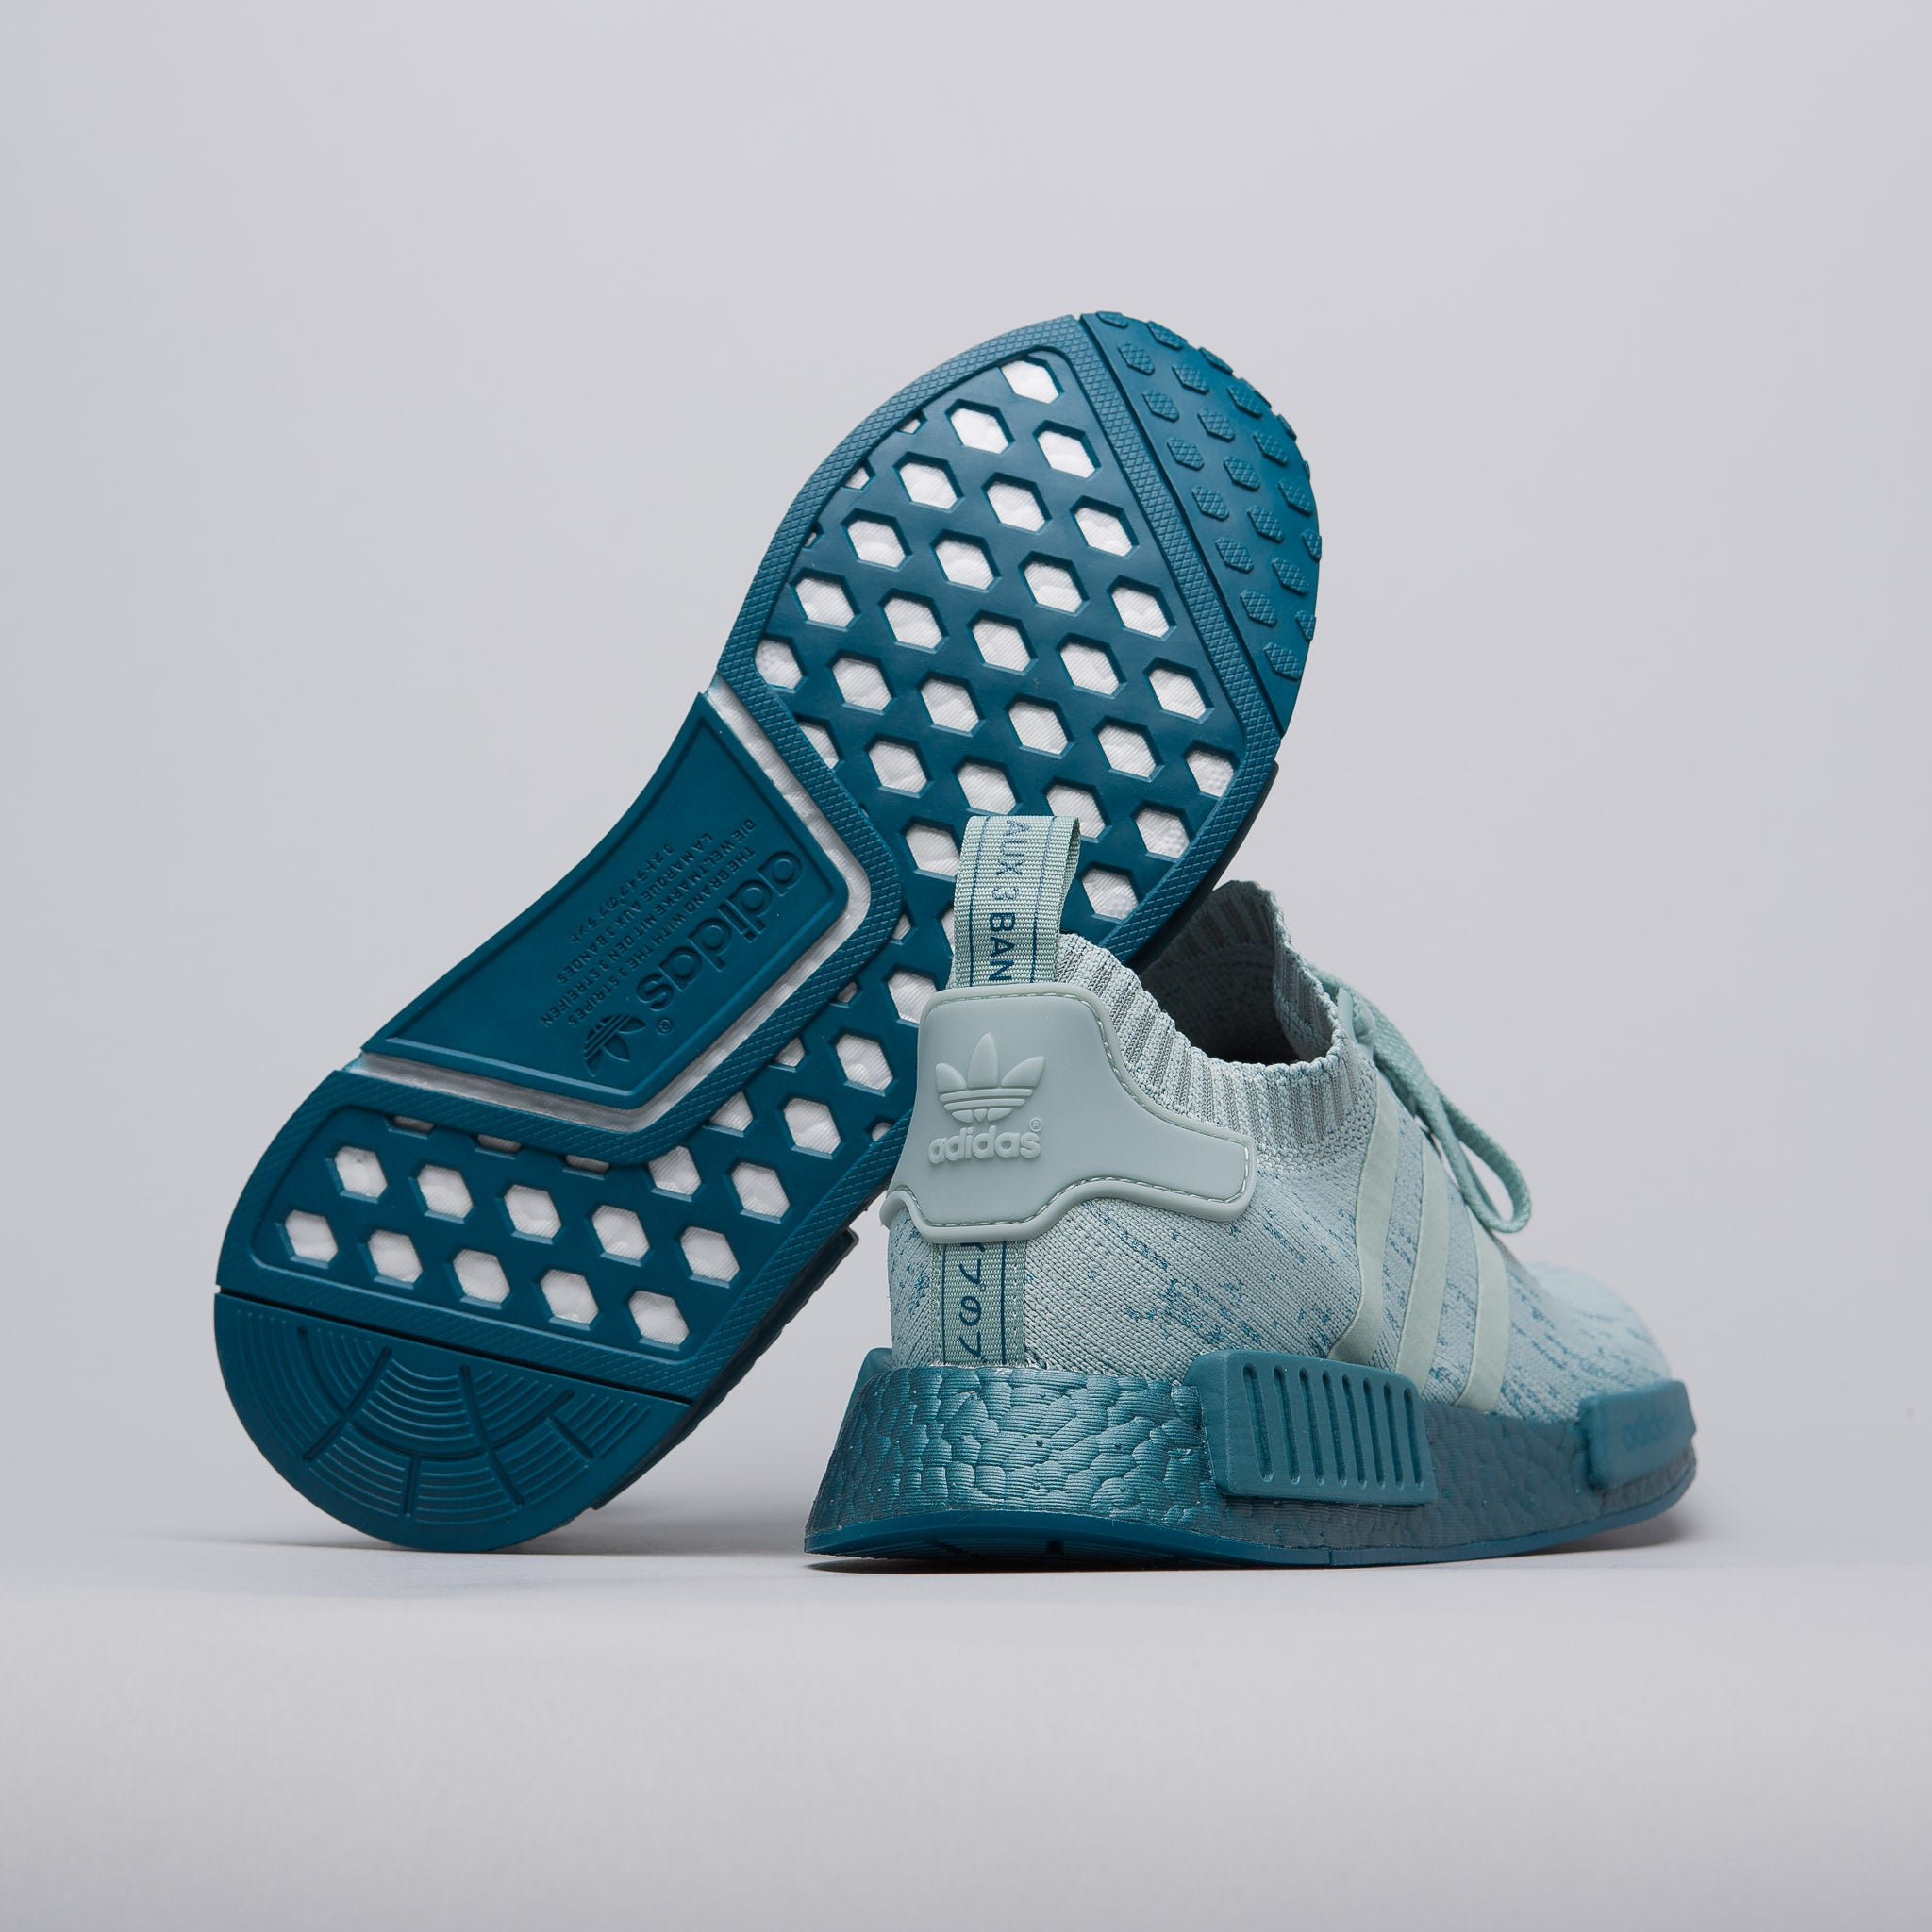 adidas nmd r1 bedwin,adidas originals nmd light blue